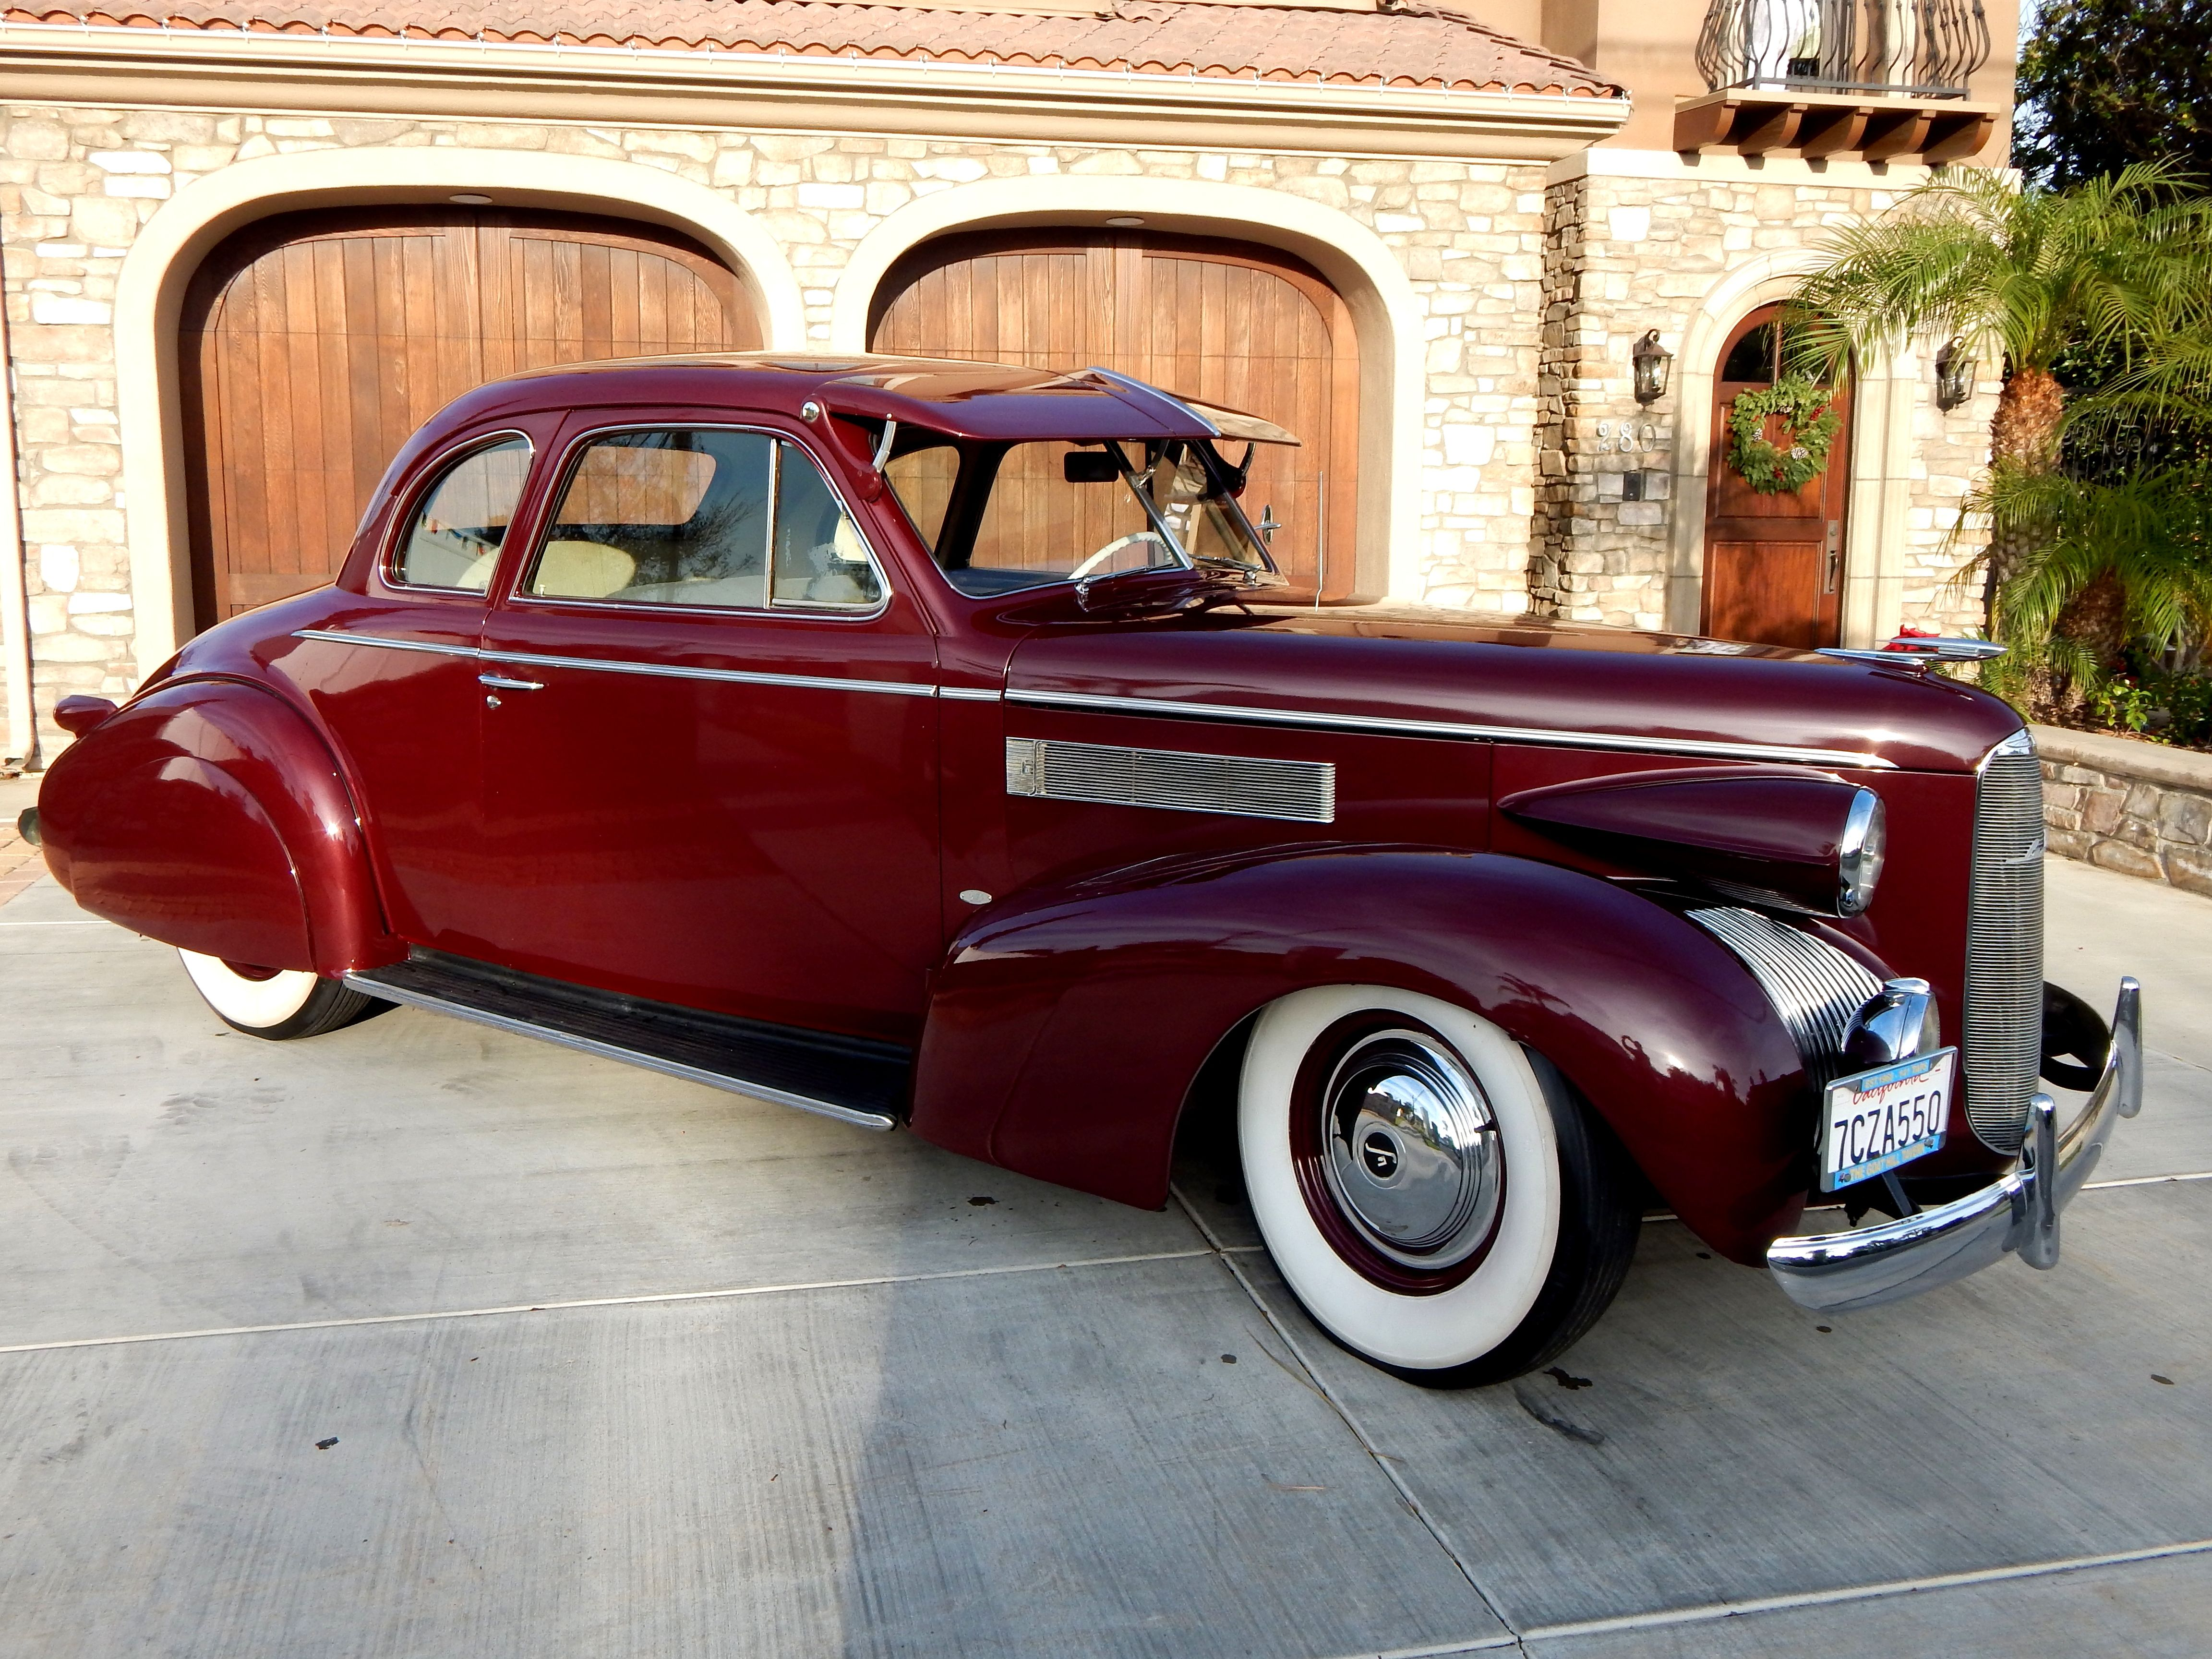 1939 LaSALLE / Cadillac 5 Window Coupe. California car with the ...